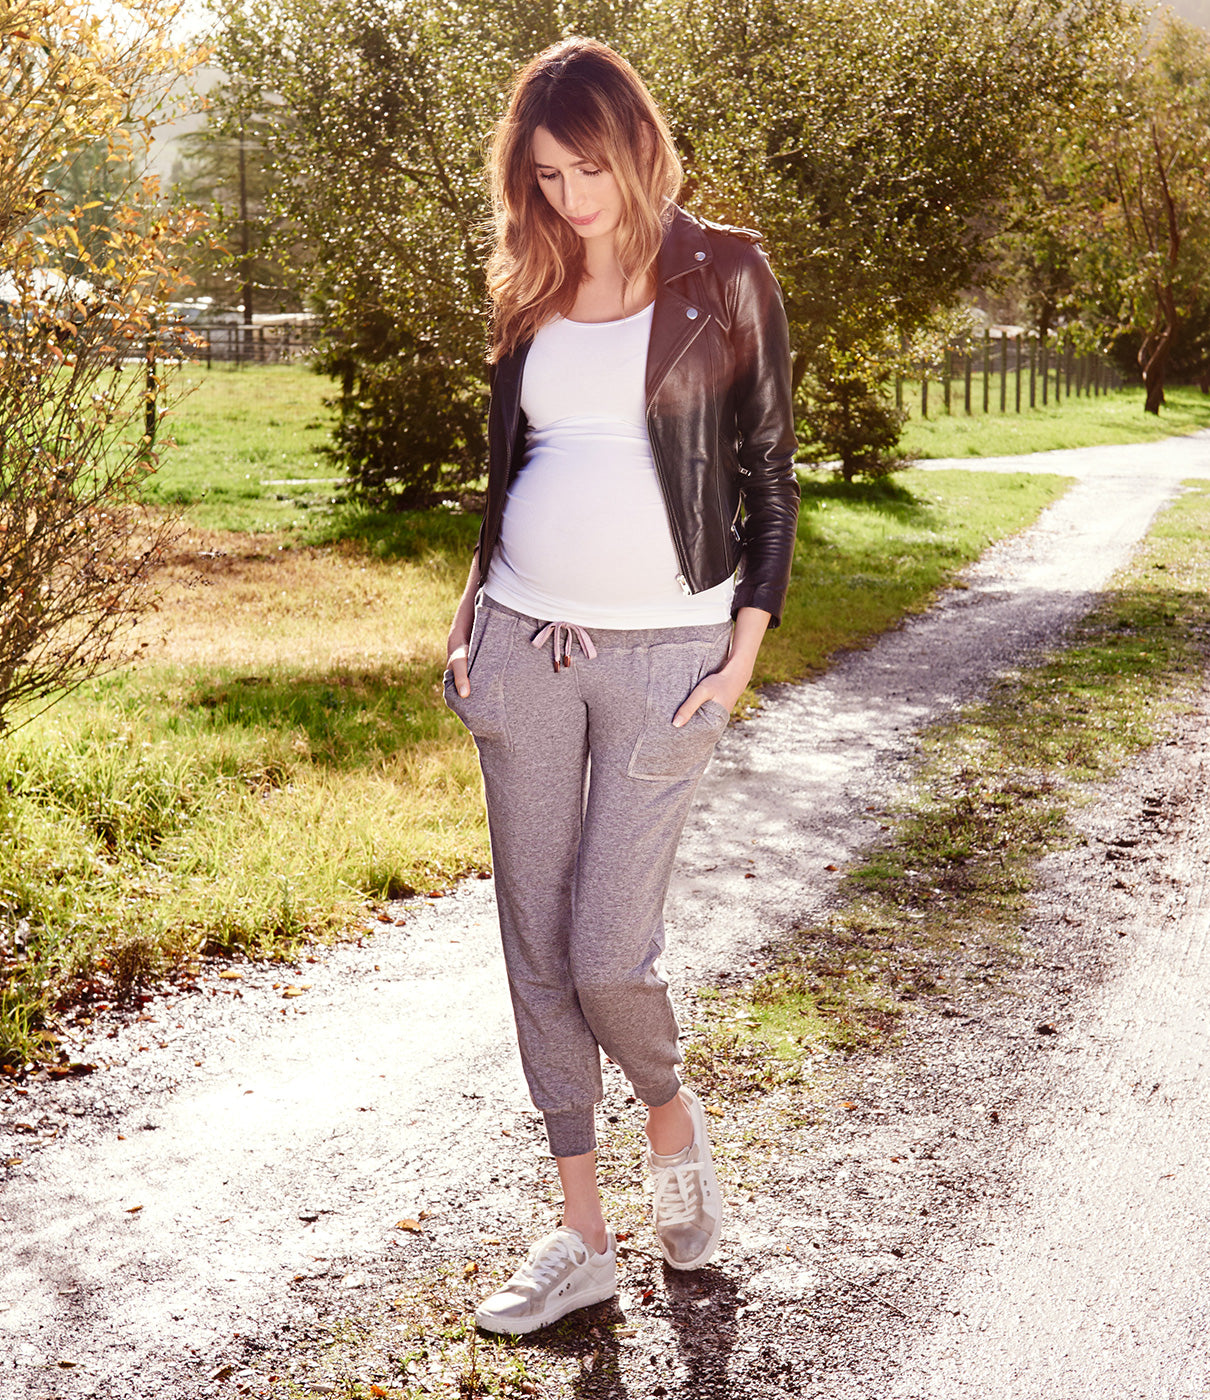 GROWS WITH YOUDesigned for wear during and after pregnancy, making them a great casual wardrobe addition.